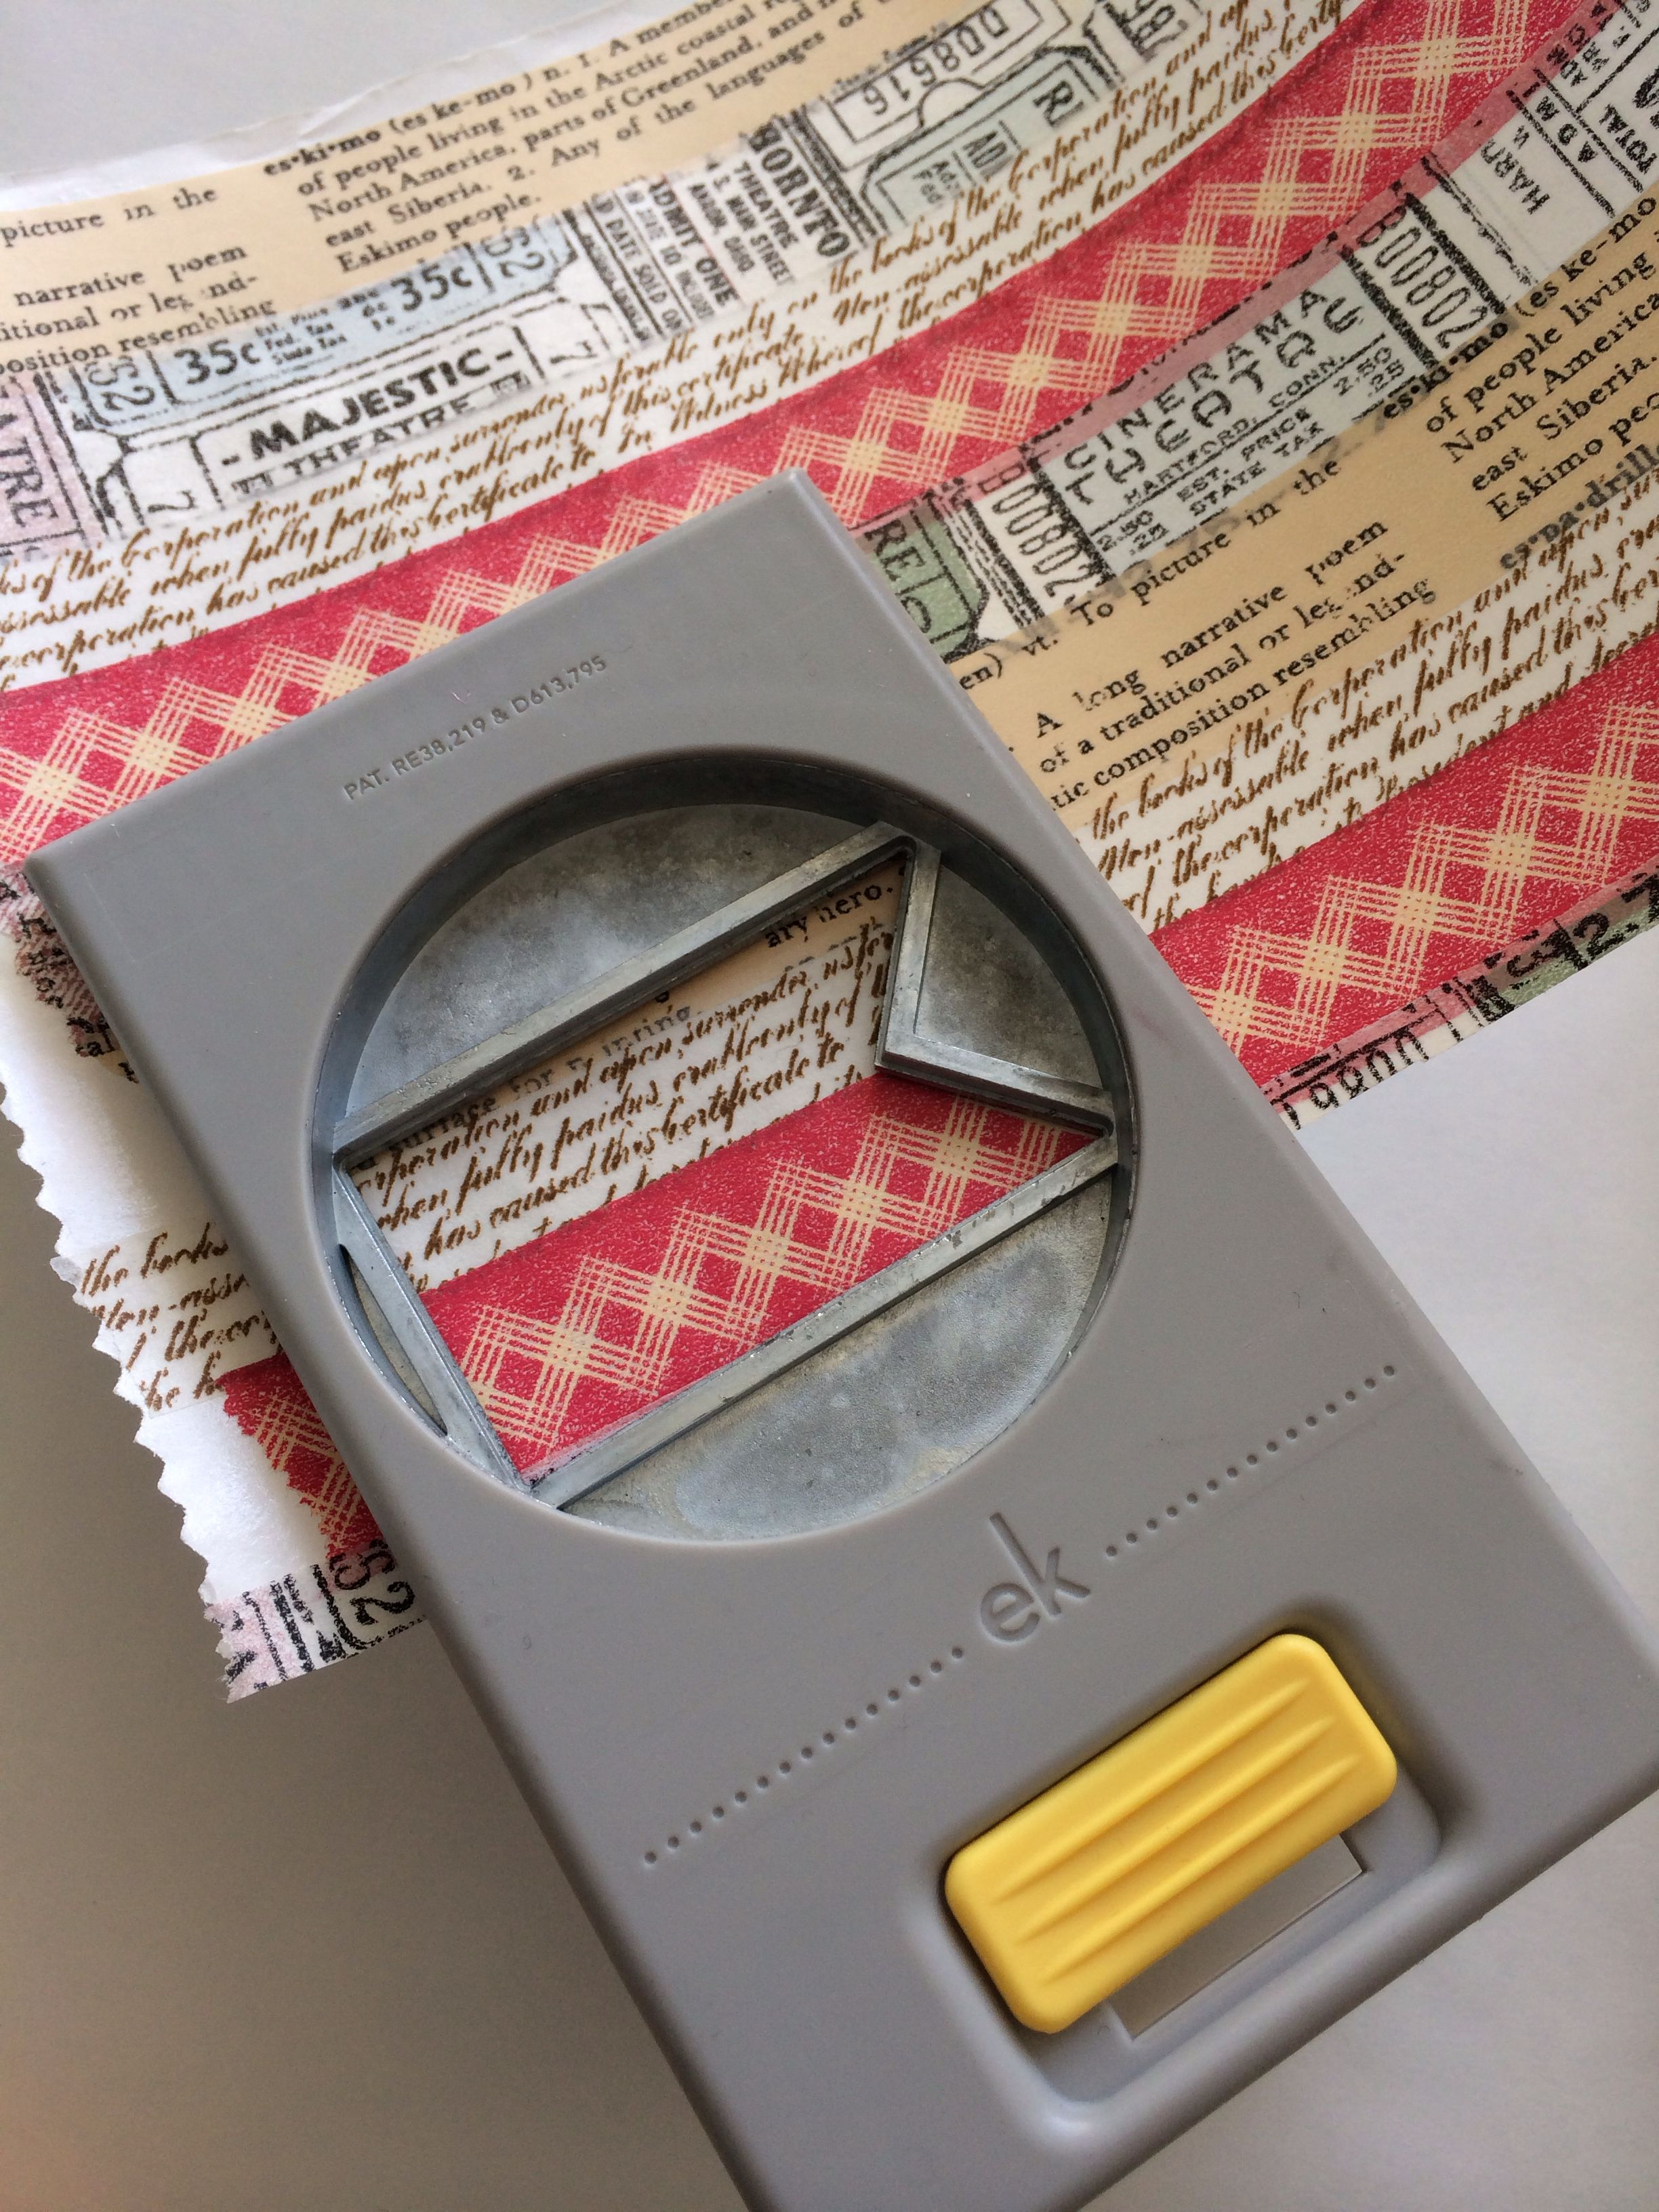 Stick washi tape on wax paper or